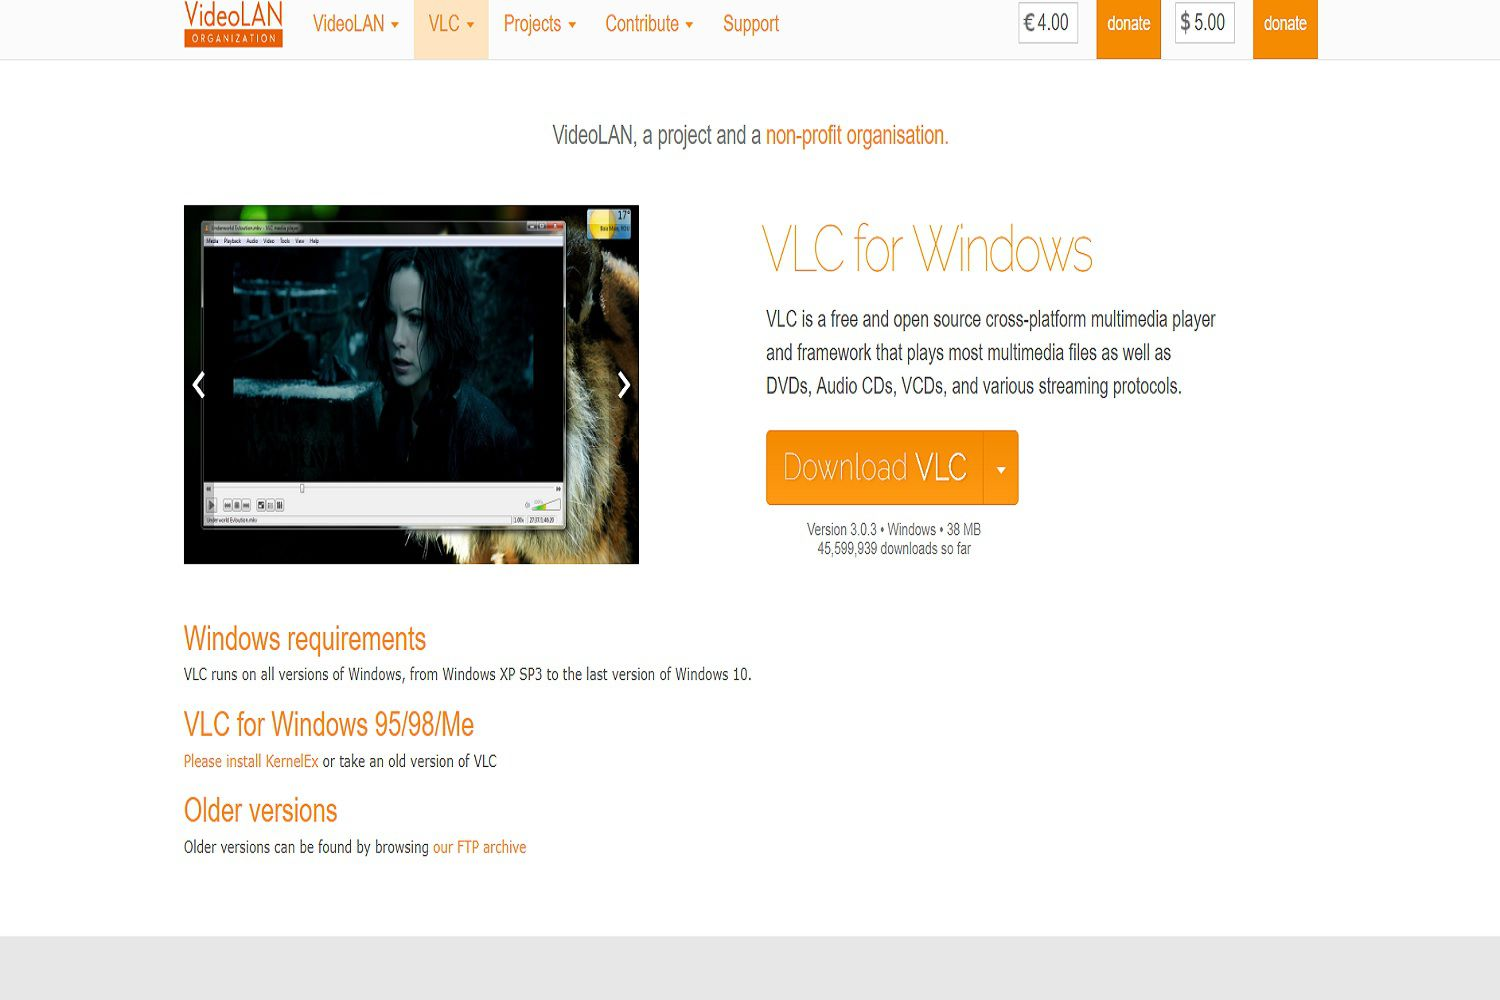 A screenshot of the VLC for Windows web page. This is where you can download the VLC DVD player for free.